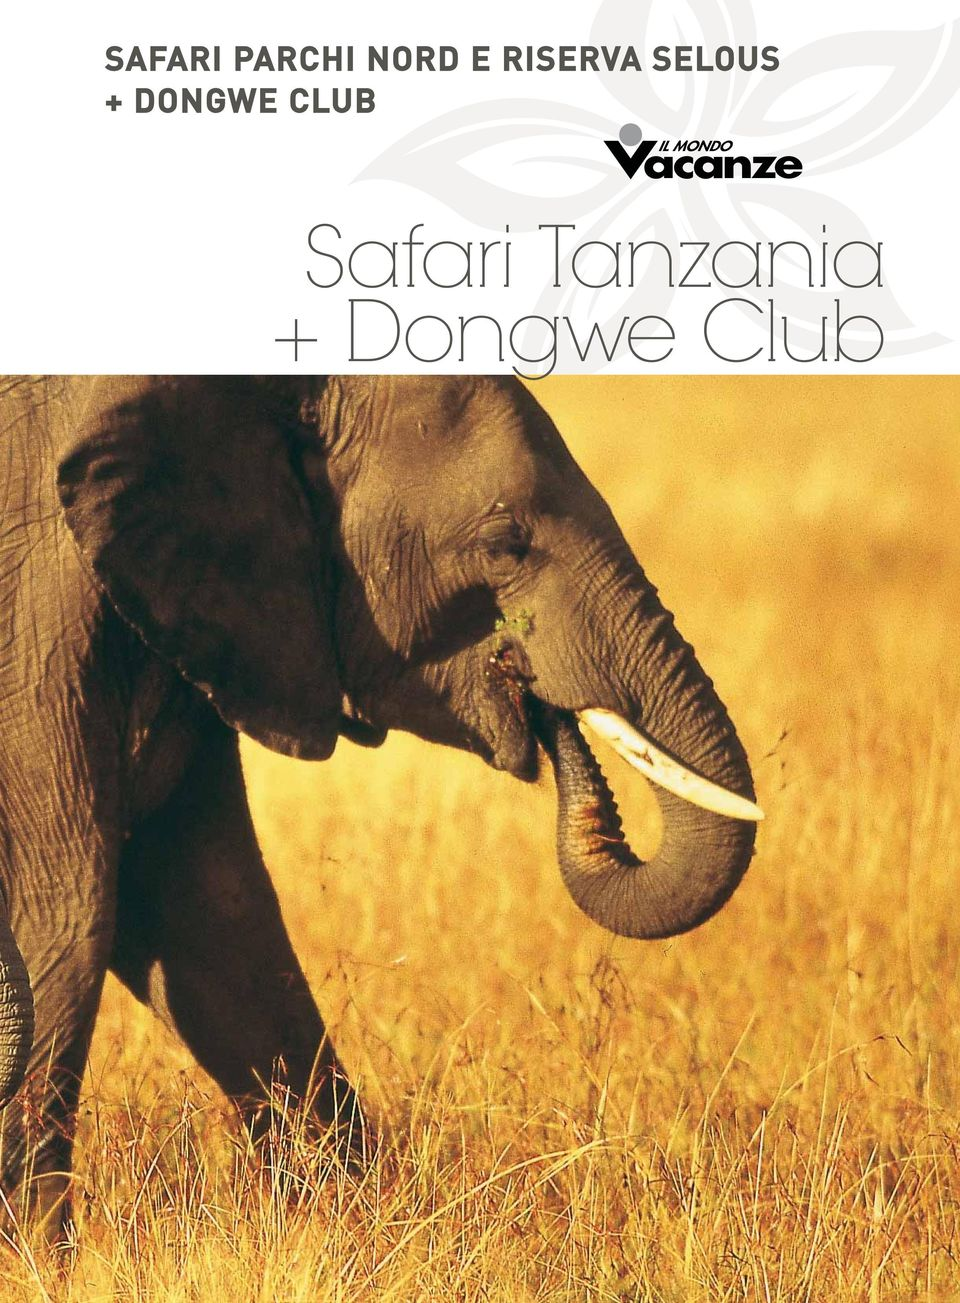 DONGWE CLUB Safari